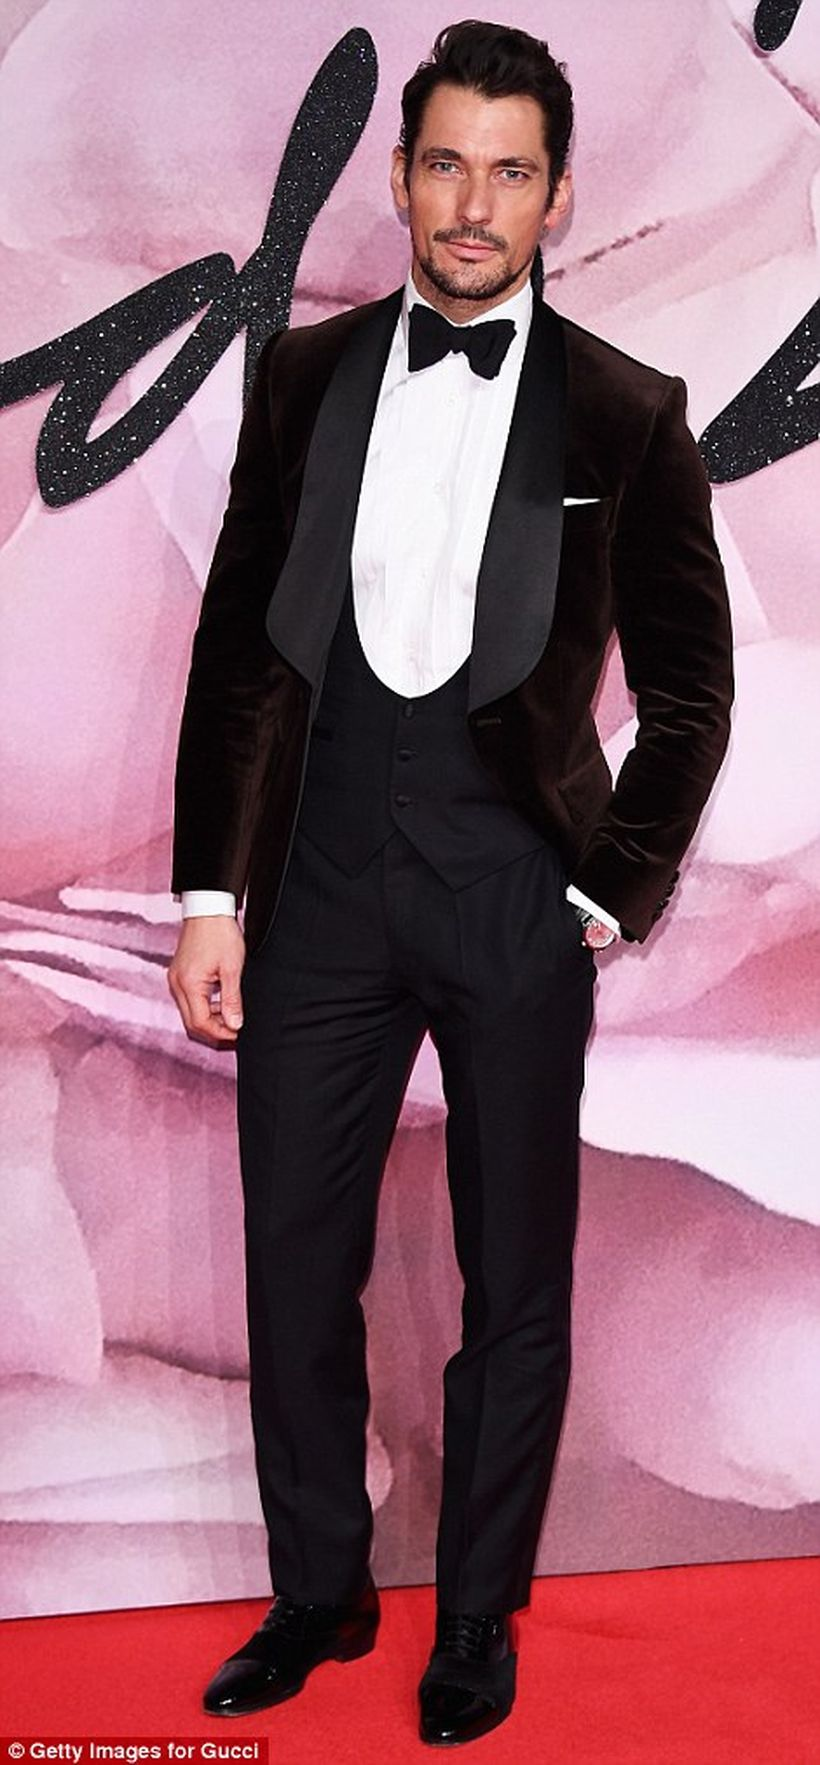 Elegant men's formal wear with tuxedo and suits 34